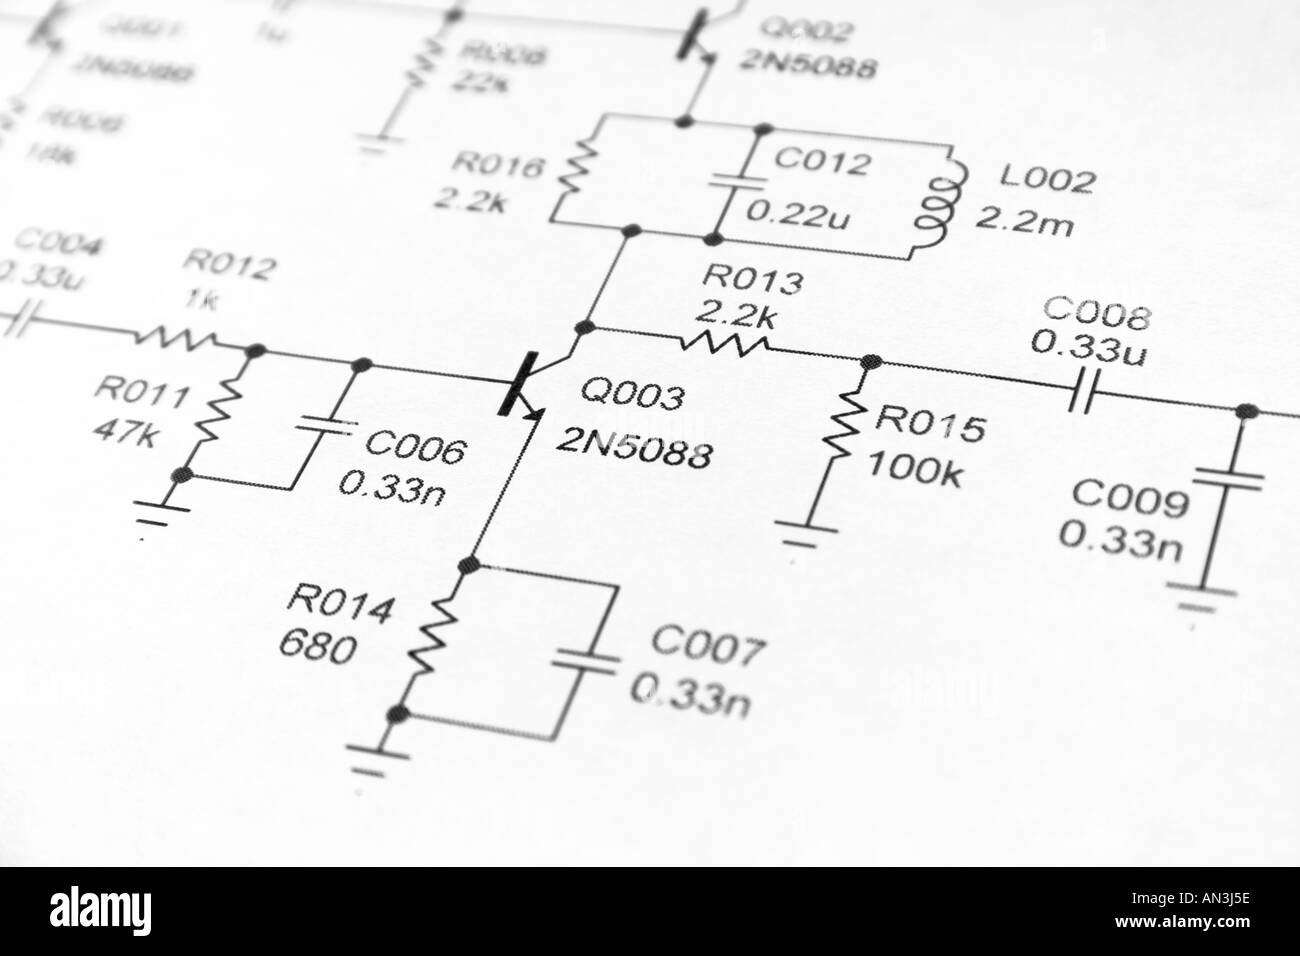 Electronic Schematic Stock Photos Wire Wiring Diagram Delco Cs Alternator Imgs 96806 Close Up Of Electronics Photo 5027421 Alamy Rh Com Components Simple